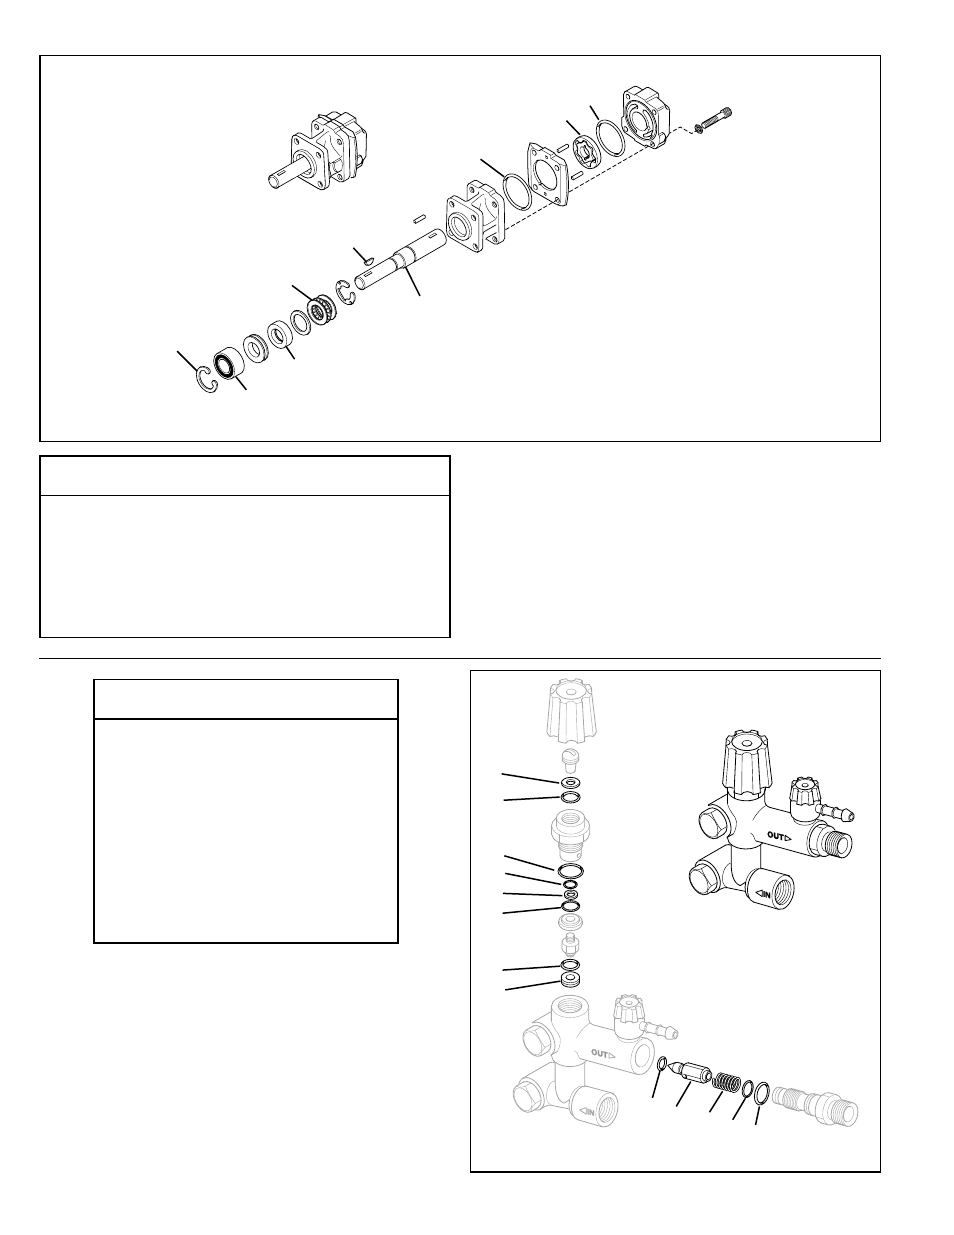 Figure 19 service parts for hydraulic motor, Figure 20 service parts for  unloader | John Deere SPRAYMASTER 4700 User Manual | Page 8 / 12